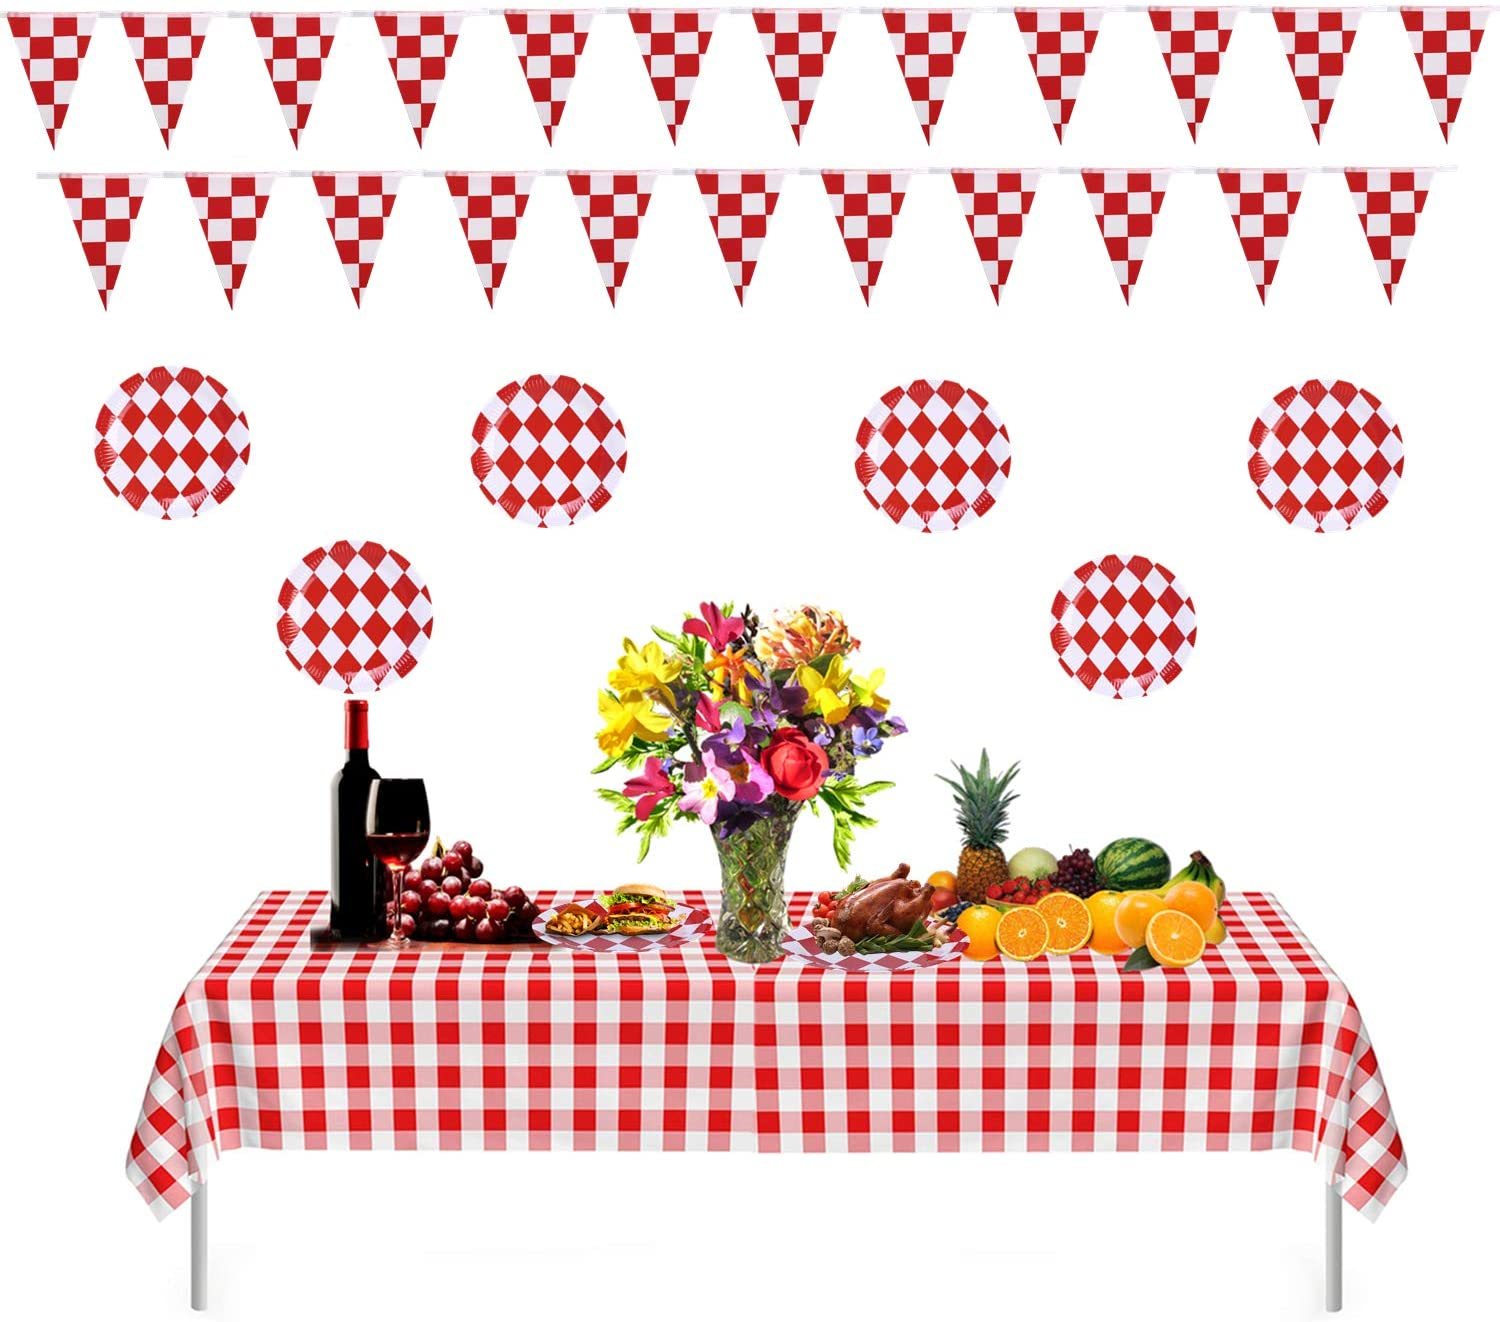 Aliyaduo 2 PCS 54 x 108 Red and White Premium Checkered Tablecloths 2 PCS 32.8 feet Pennant Banner 20 PCS 9 Disposable Paper Plate Perfect for Family Dinner/Outdoor Party